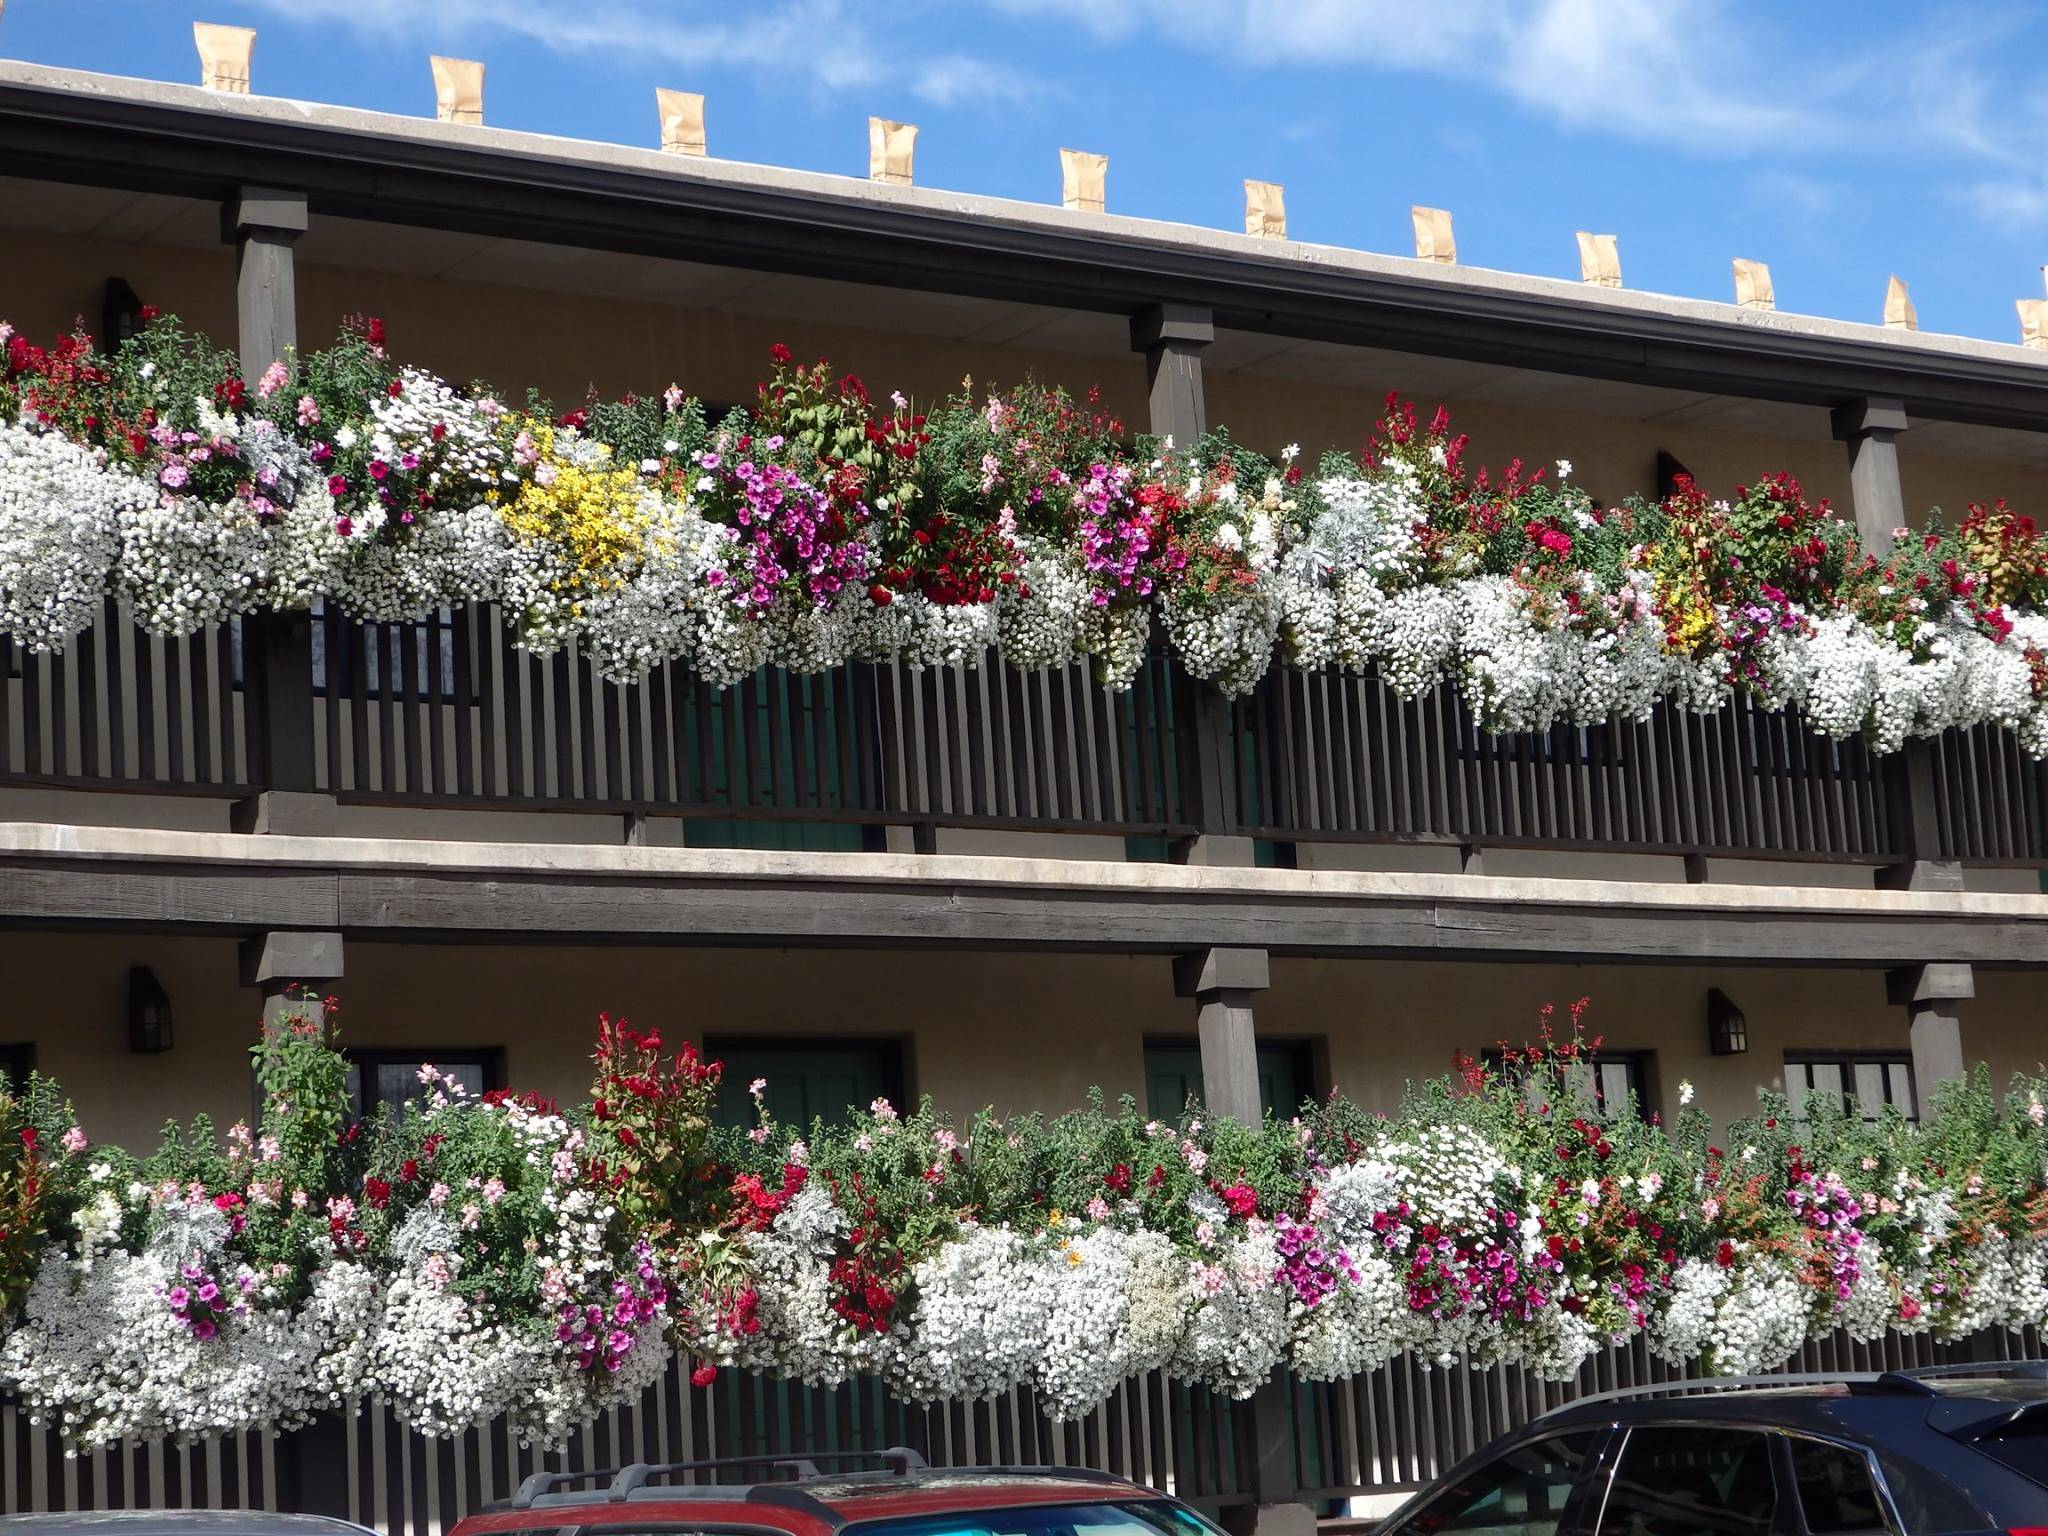 Flowers adorning Inn of the Governors